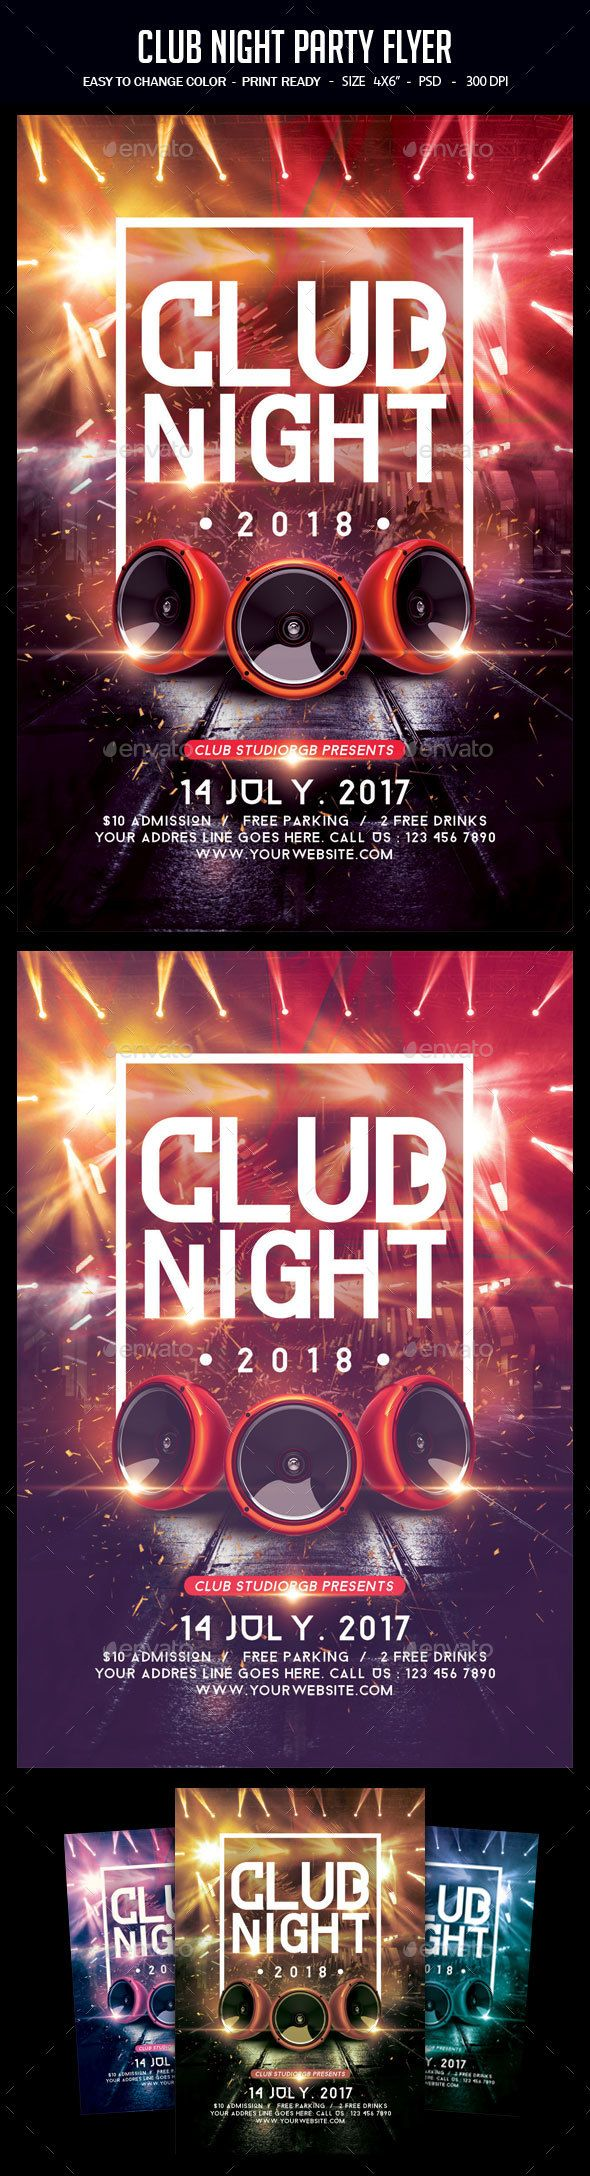 Club Night Party Flyer | Party flyer, Night parties and Invitation ...